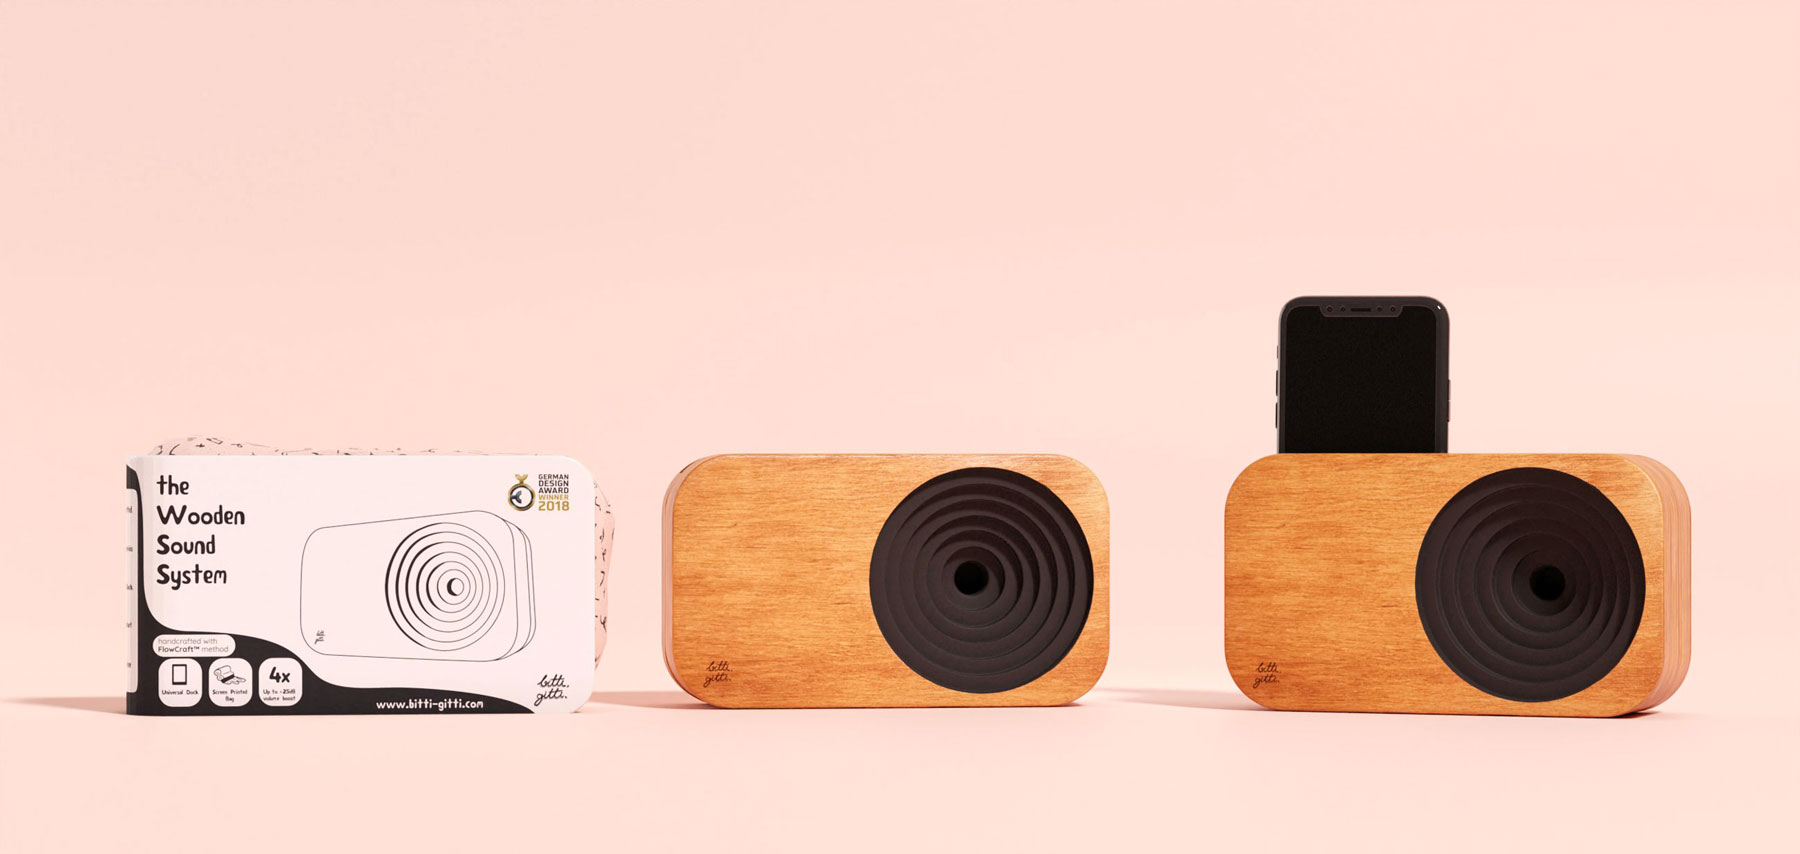 the wooden sound system sustainable packaging